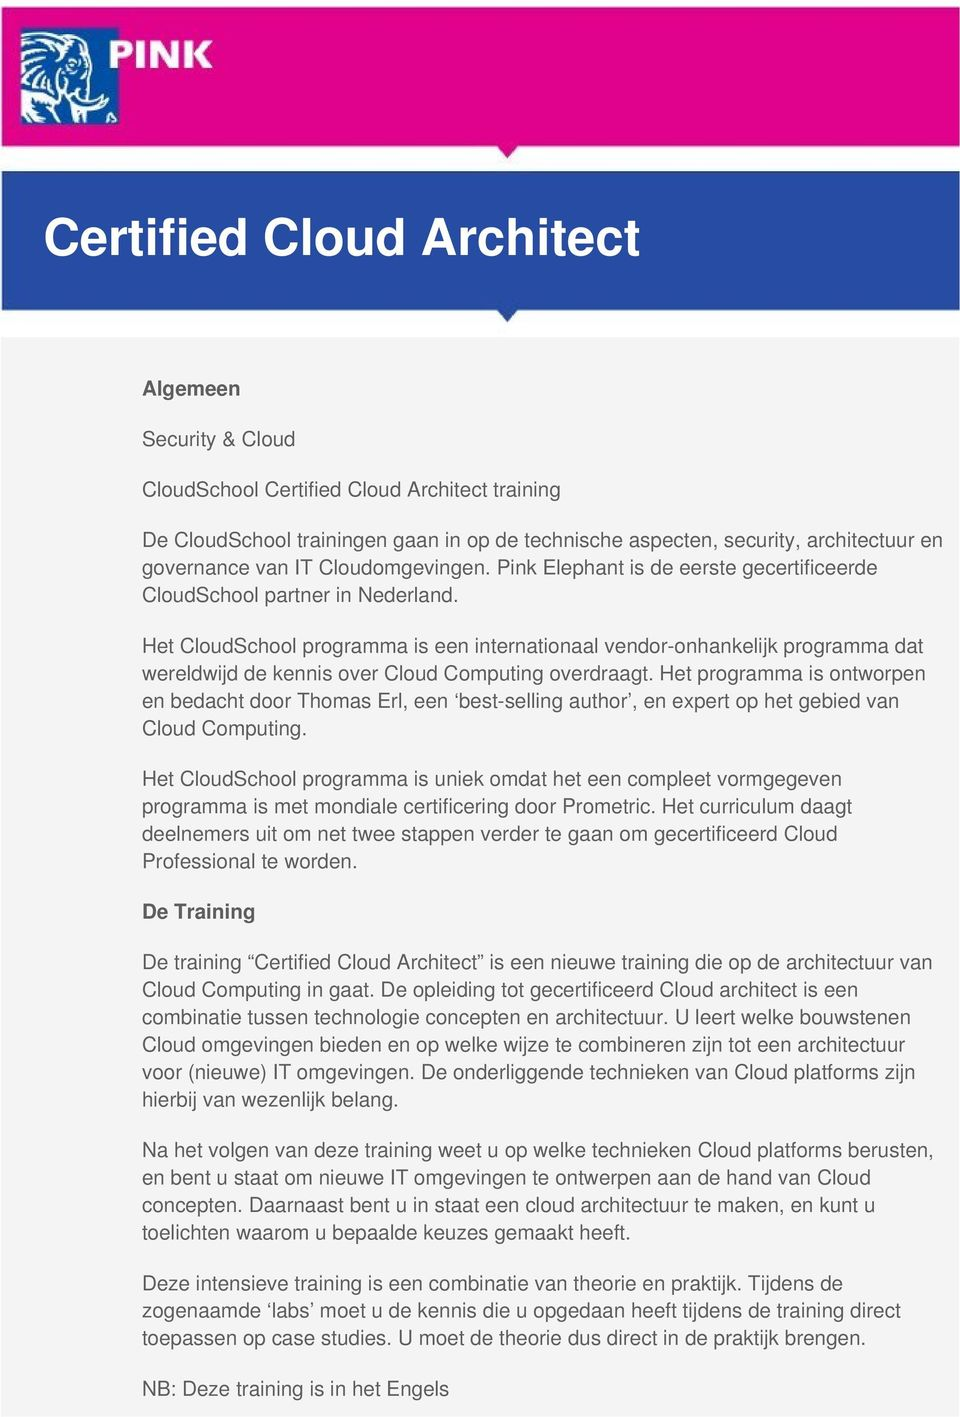 Het CloudSchool programma is een internationaal vendor-onhankelijk programma dat wereldwijd de kennis over Cloud Computing overdraagt.